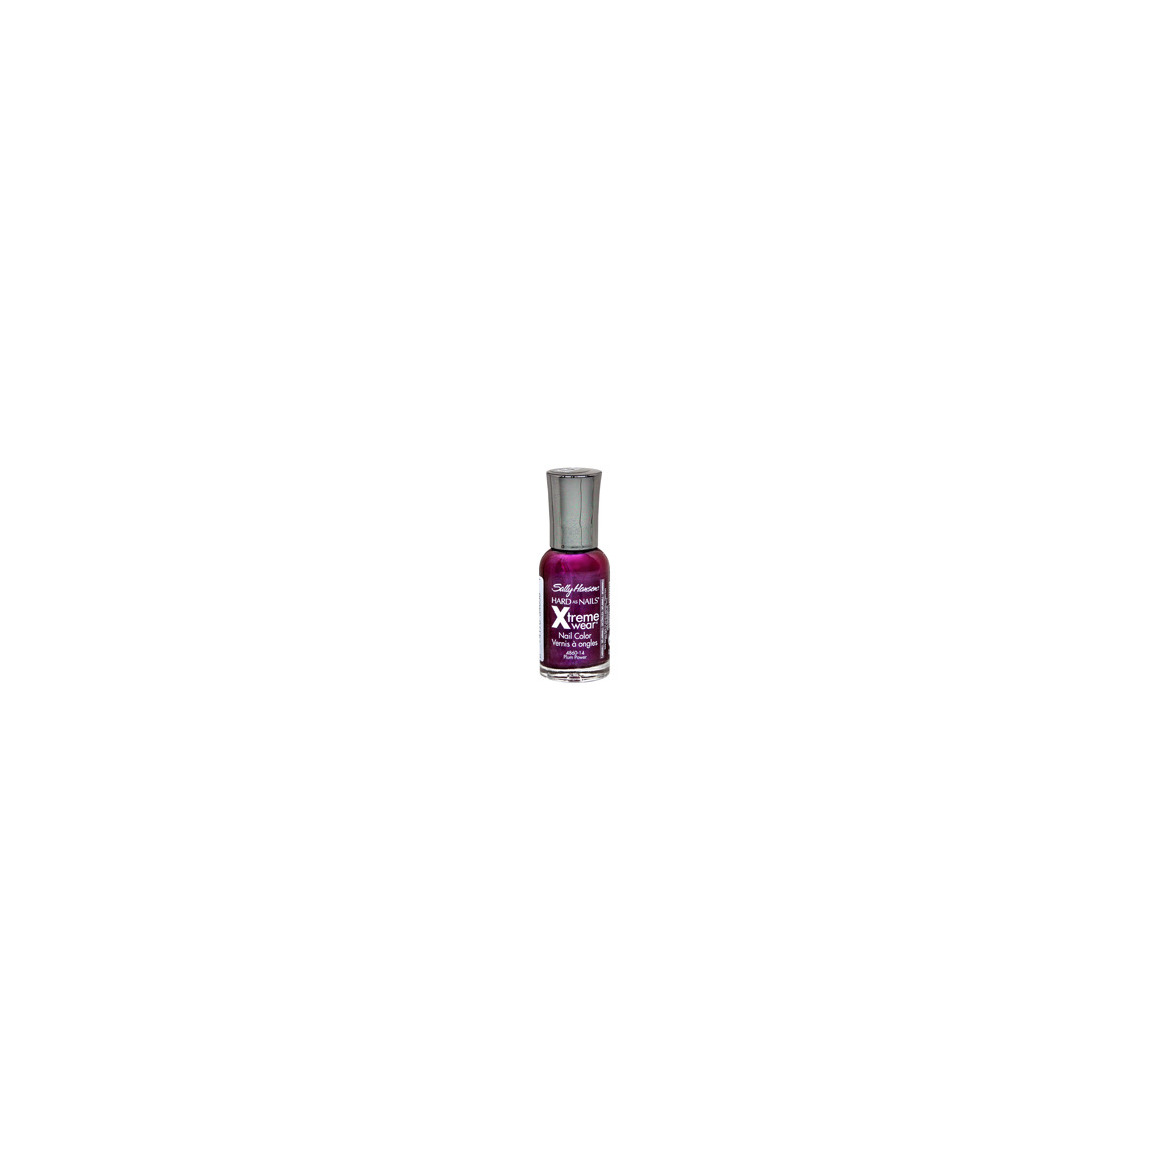 Sally Hansen Hard As Nails Xtreme Wear Nail Color Plum Power ...